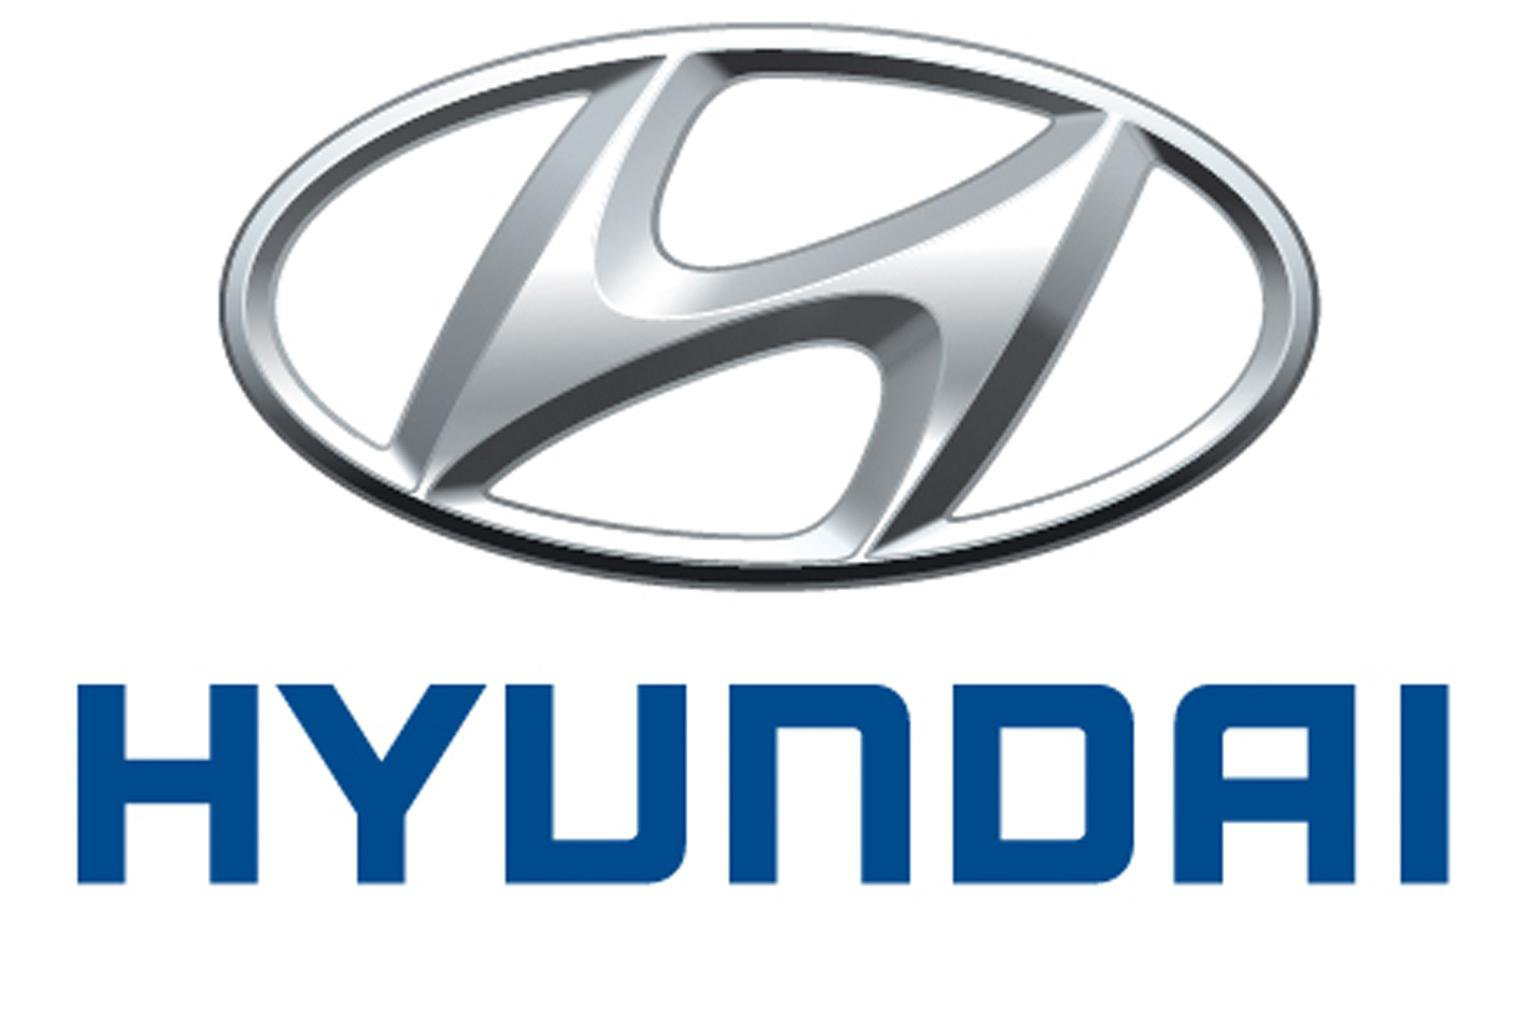 Exclusive preview of a secret new Hyundai